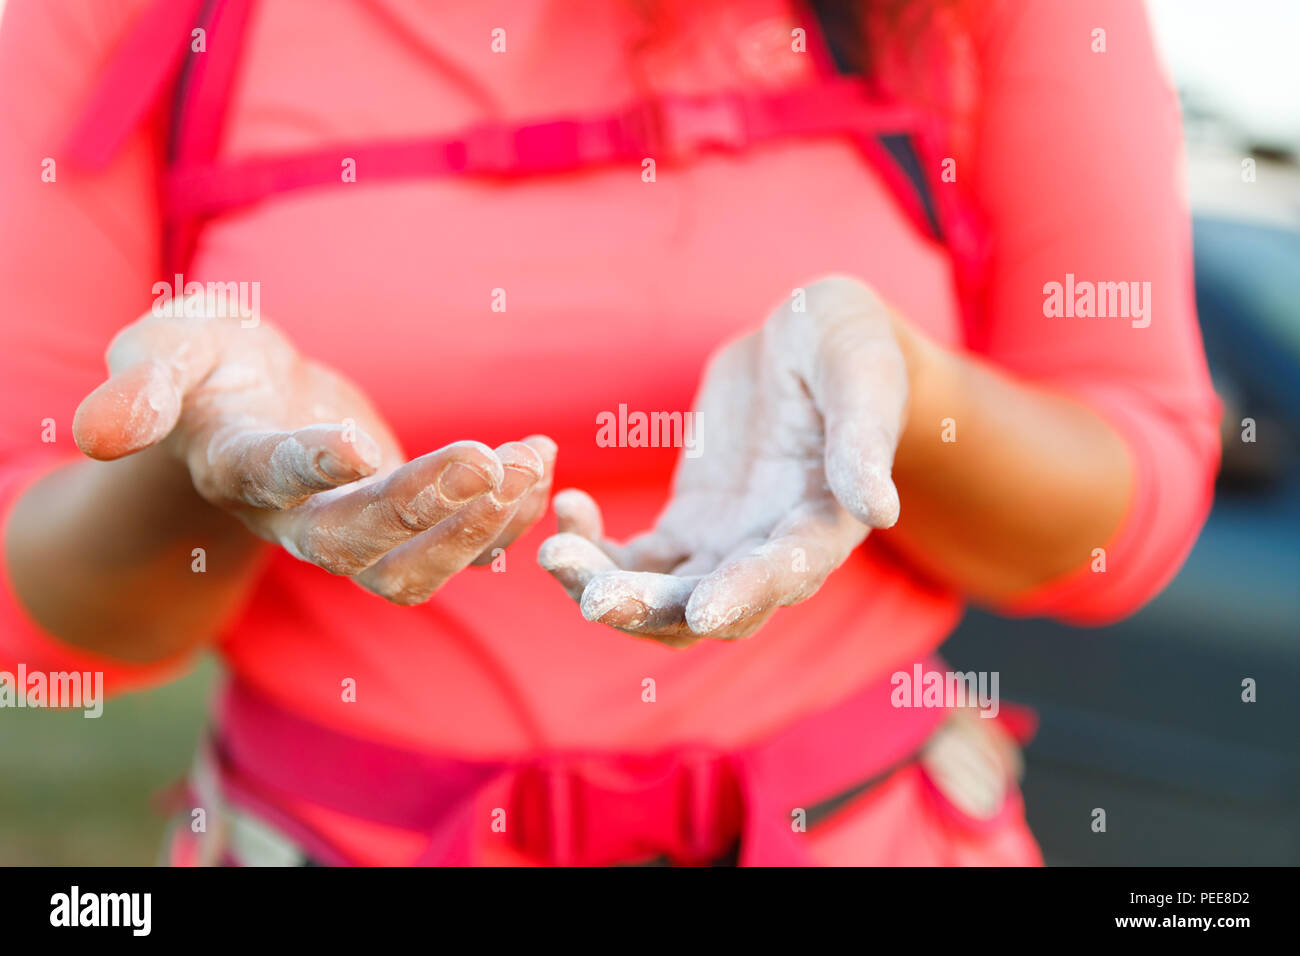 Photo of woman climber with talc on hands - Stock Image